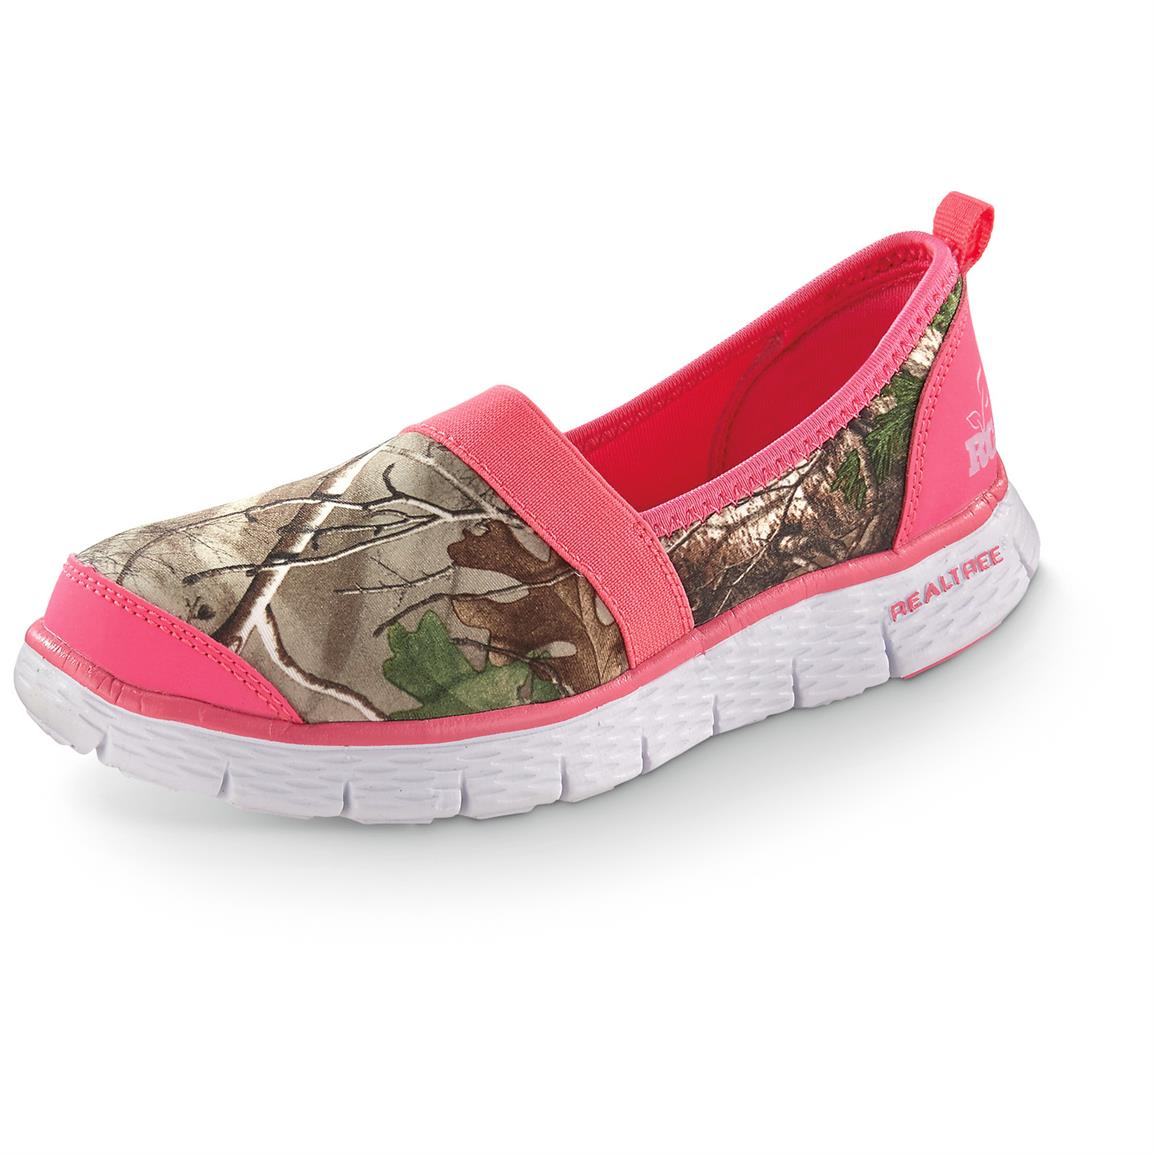 Realtree Girl Sophie Slip-on Shoes, Hot Pink / Realtree Xtra Green